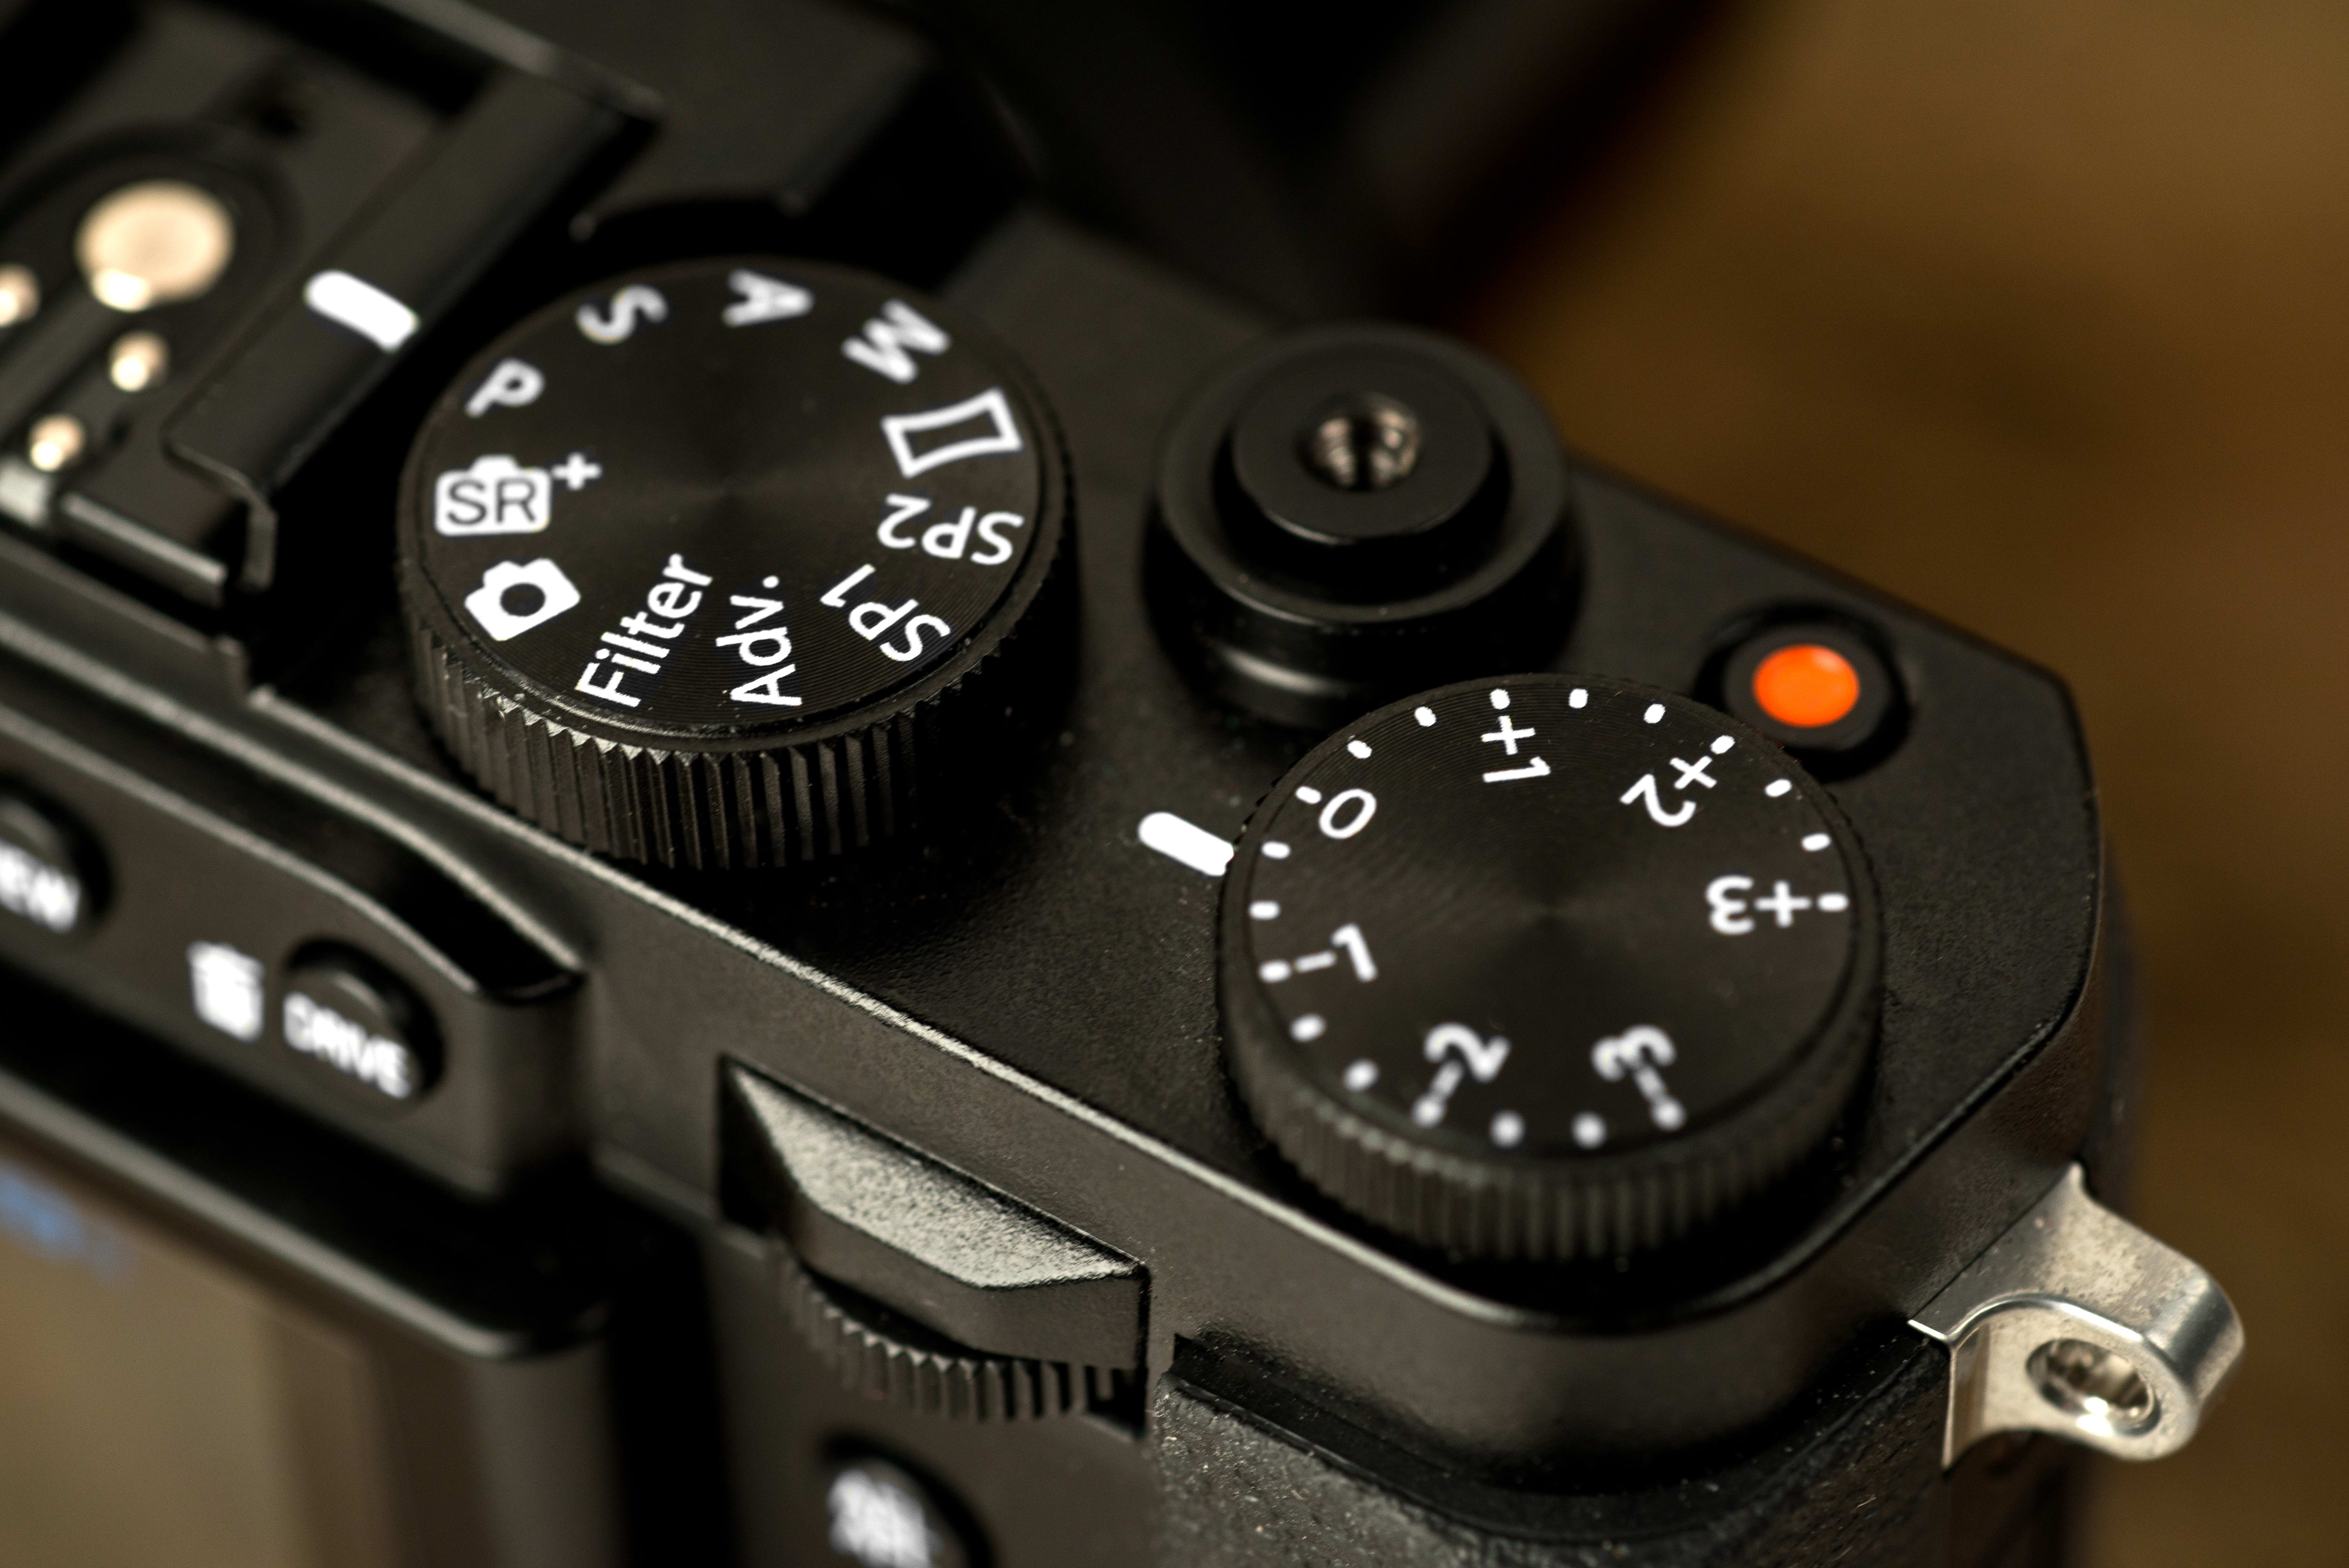 A photo of the Fujifilm X30's top controls.